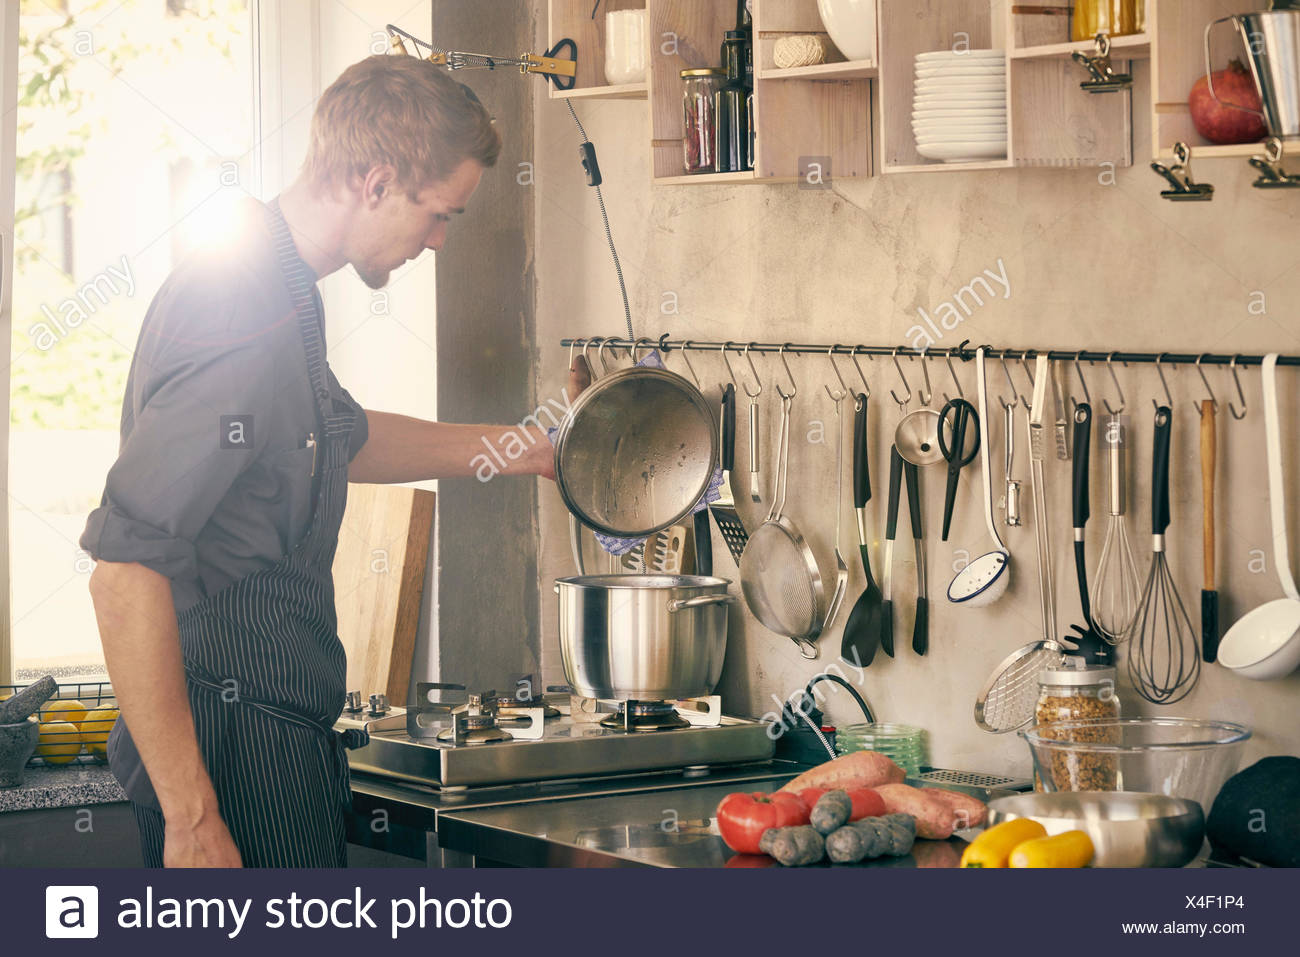 Chef cooking in commercial kitchen - Stock Image